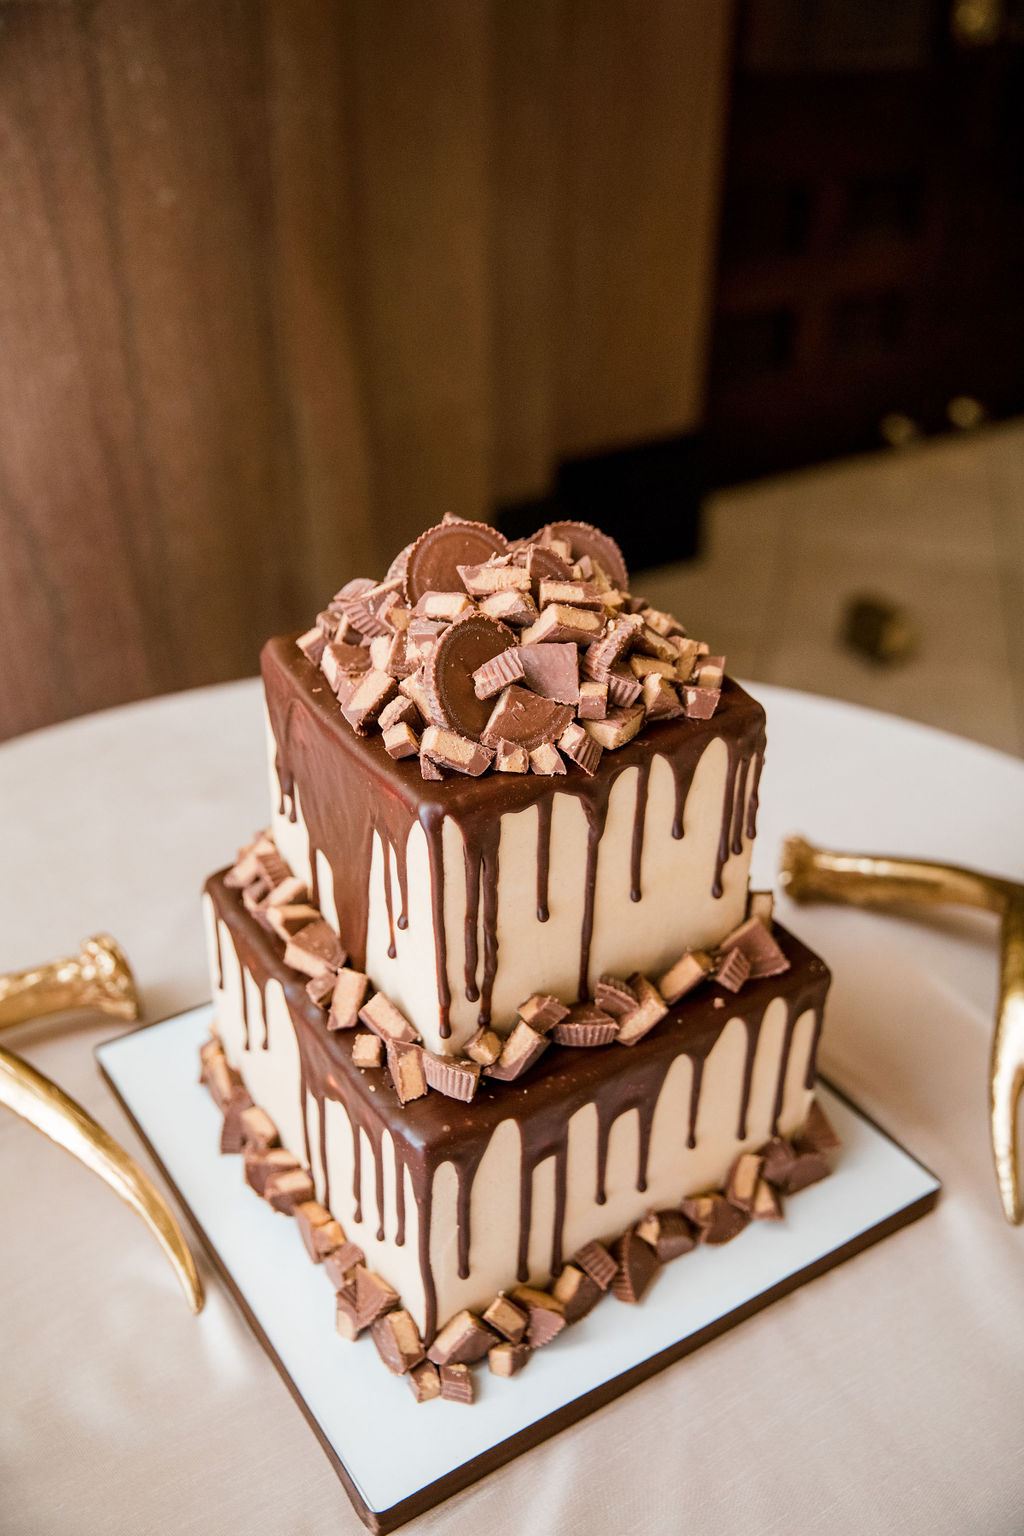 Chocolate groom's cake: Nashville wedding by John Myers Photography featured on Nashville Bride Guide